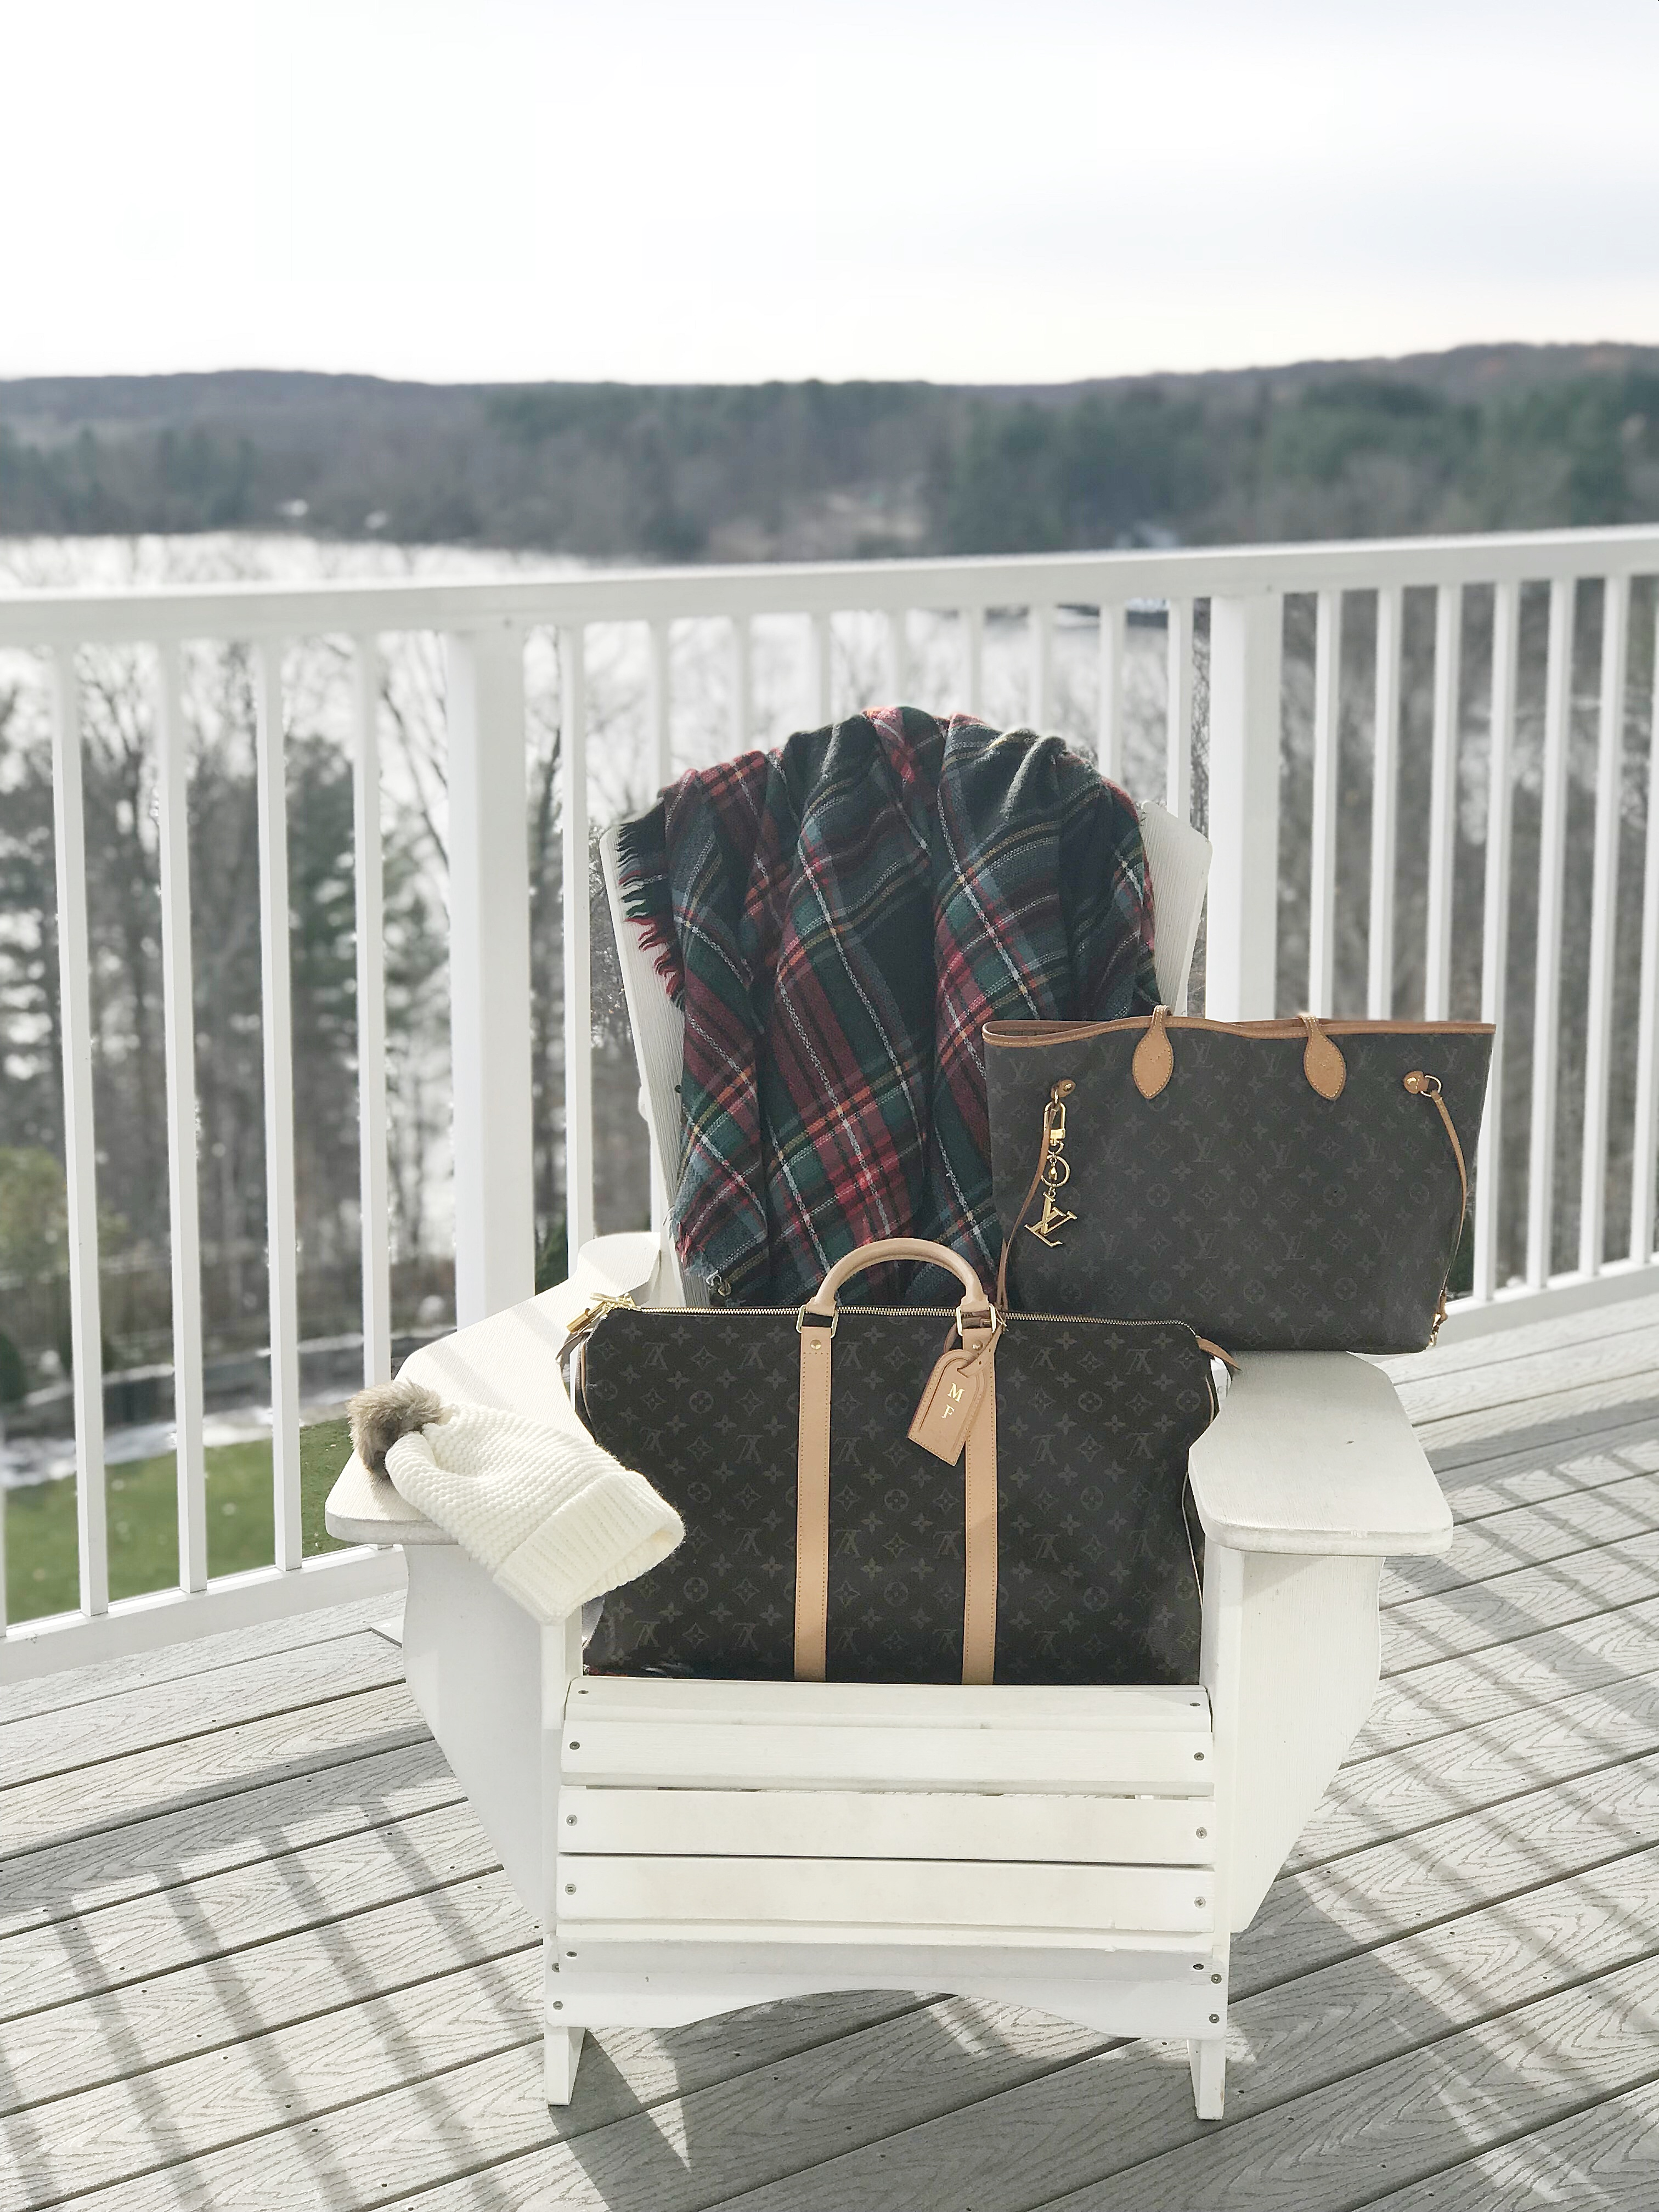 Louis Vuitton Luggage set girls weekend trip #ultimategirlsweekendto